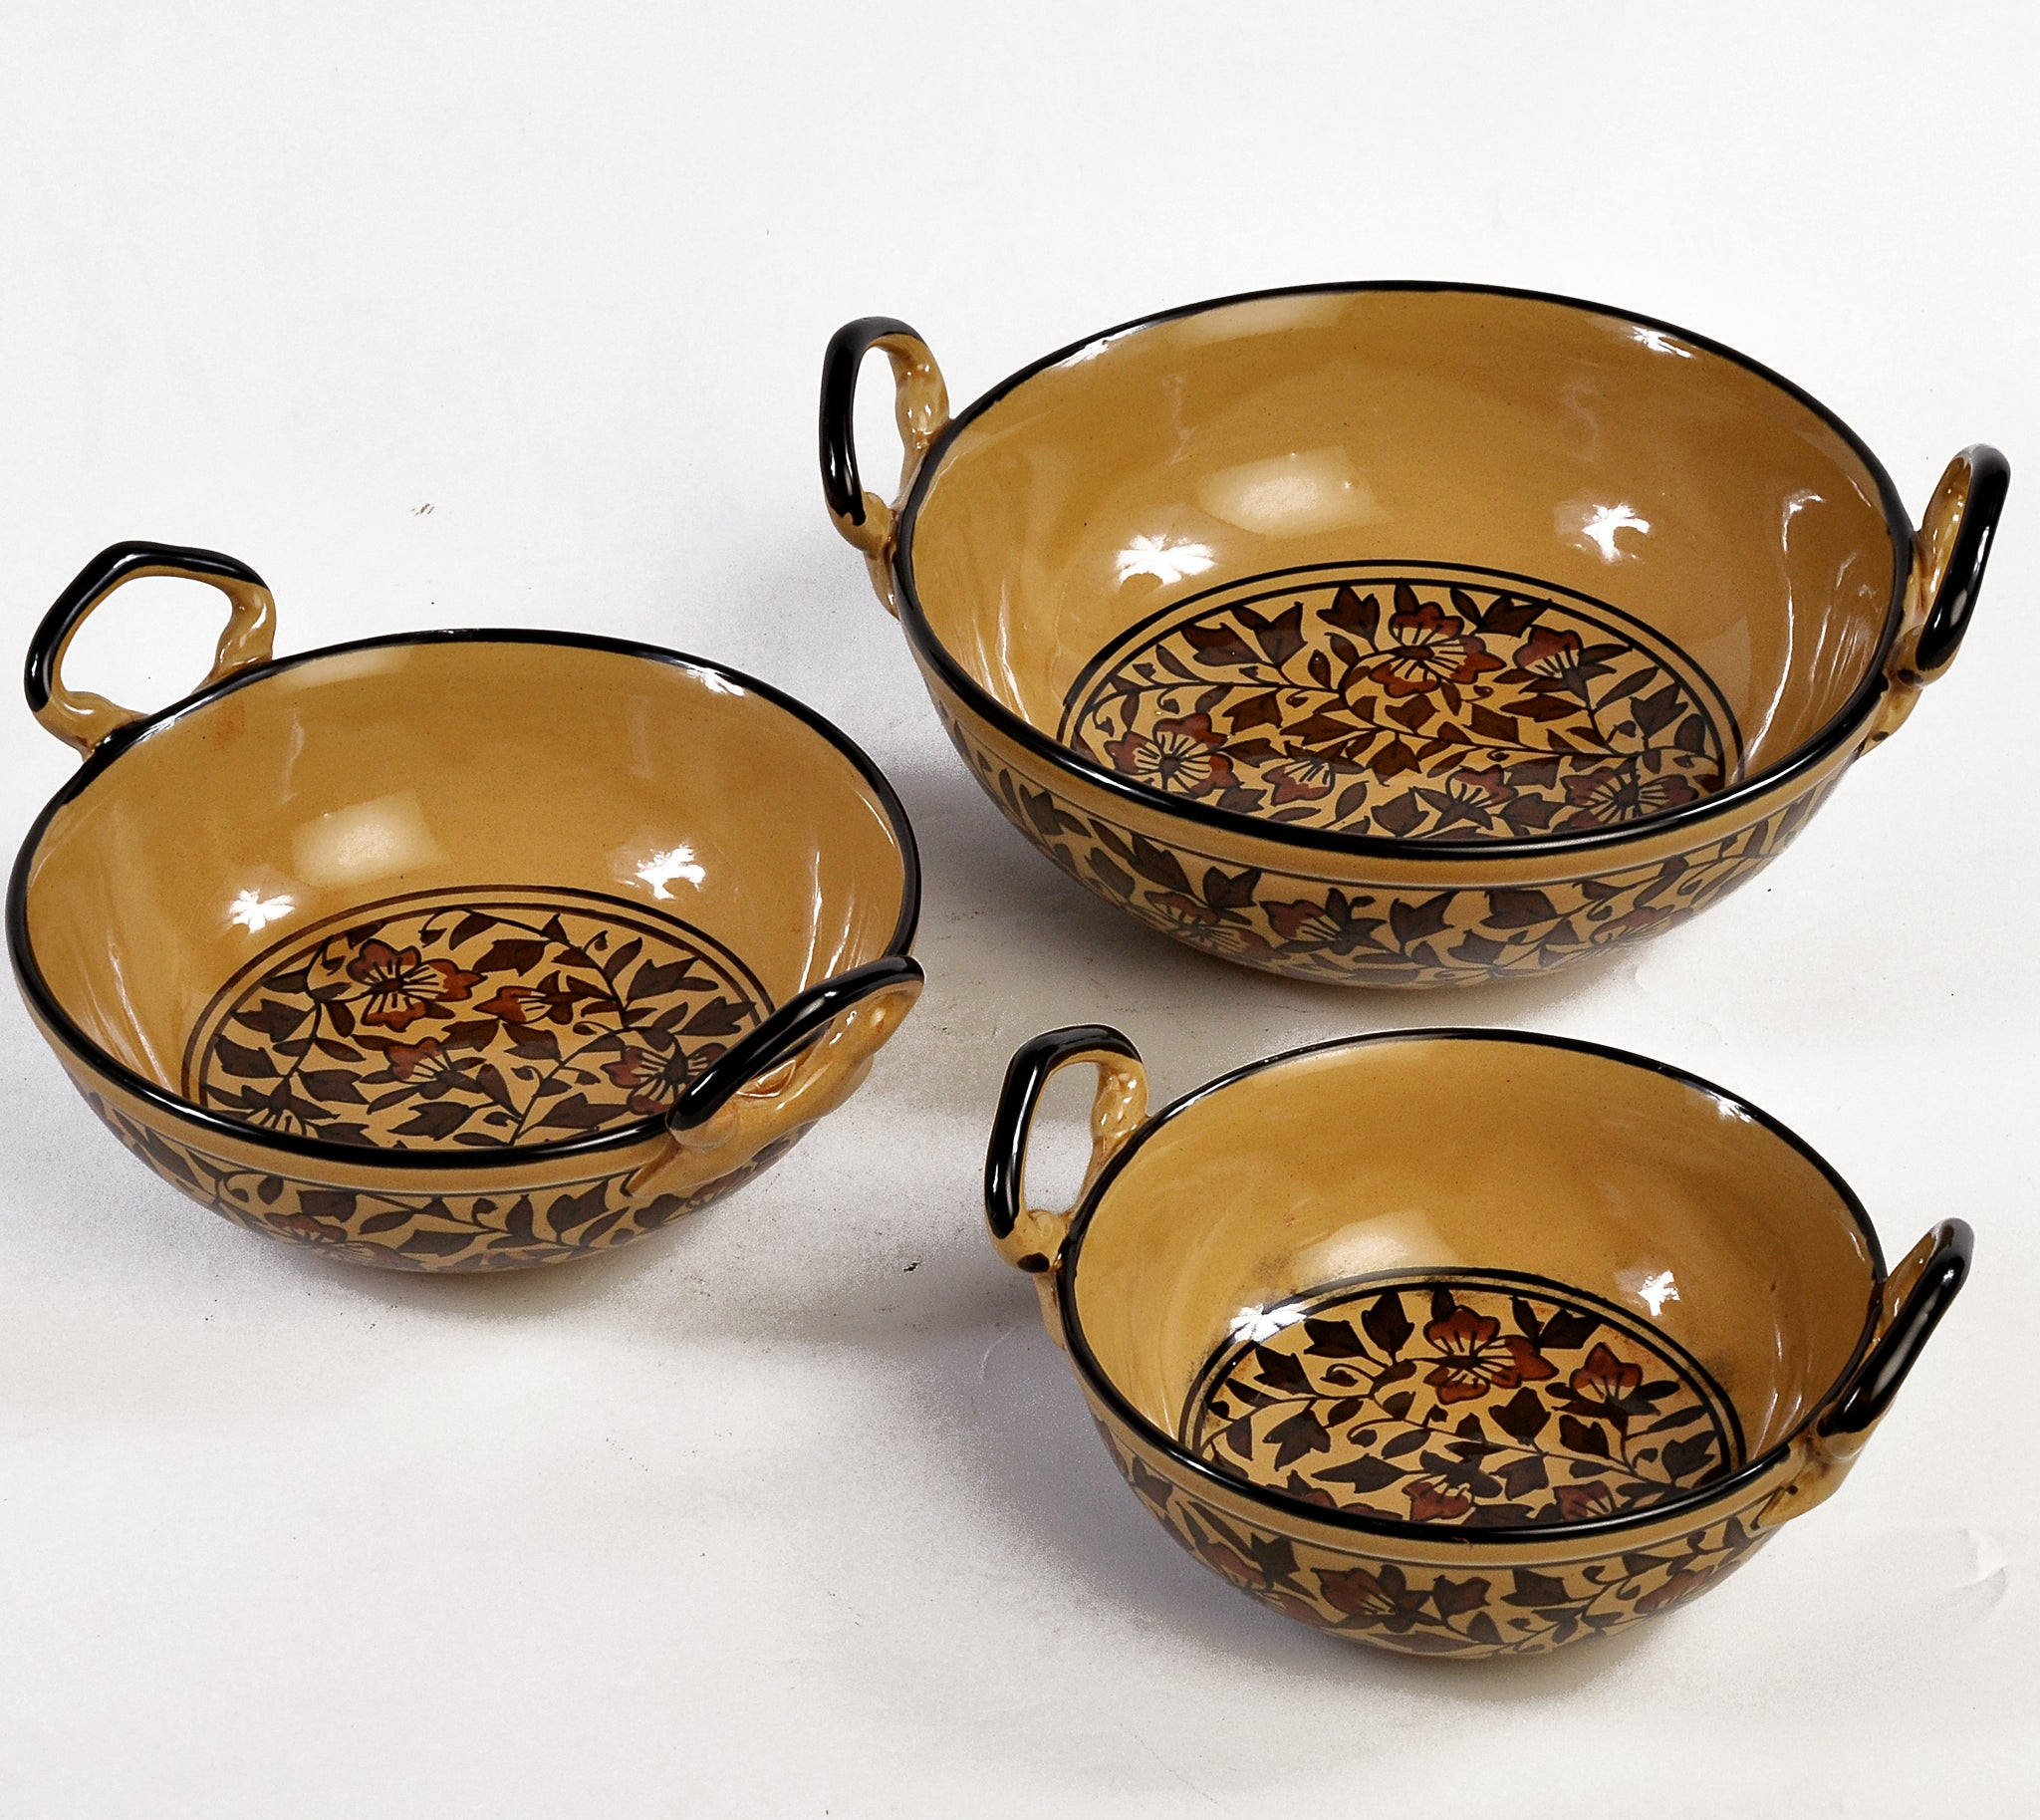 heritage-kadhai-set-deep-bowl-with-handles-dec2069